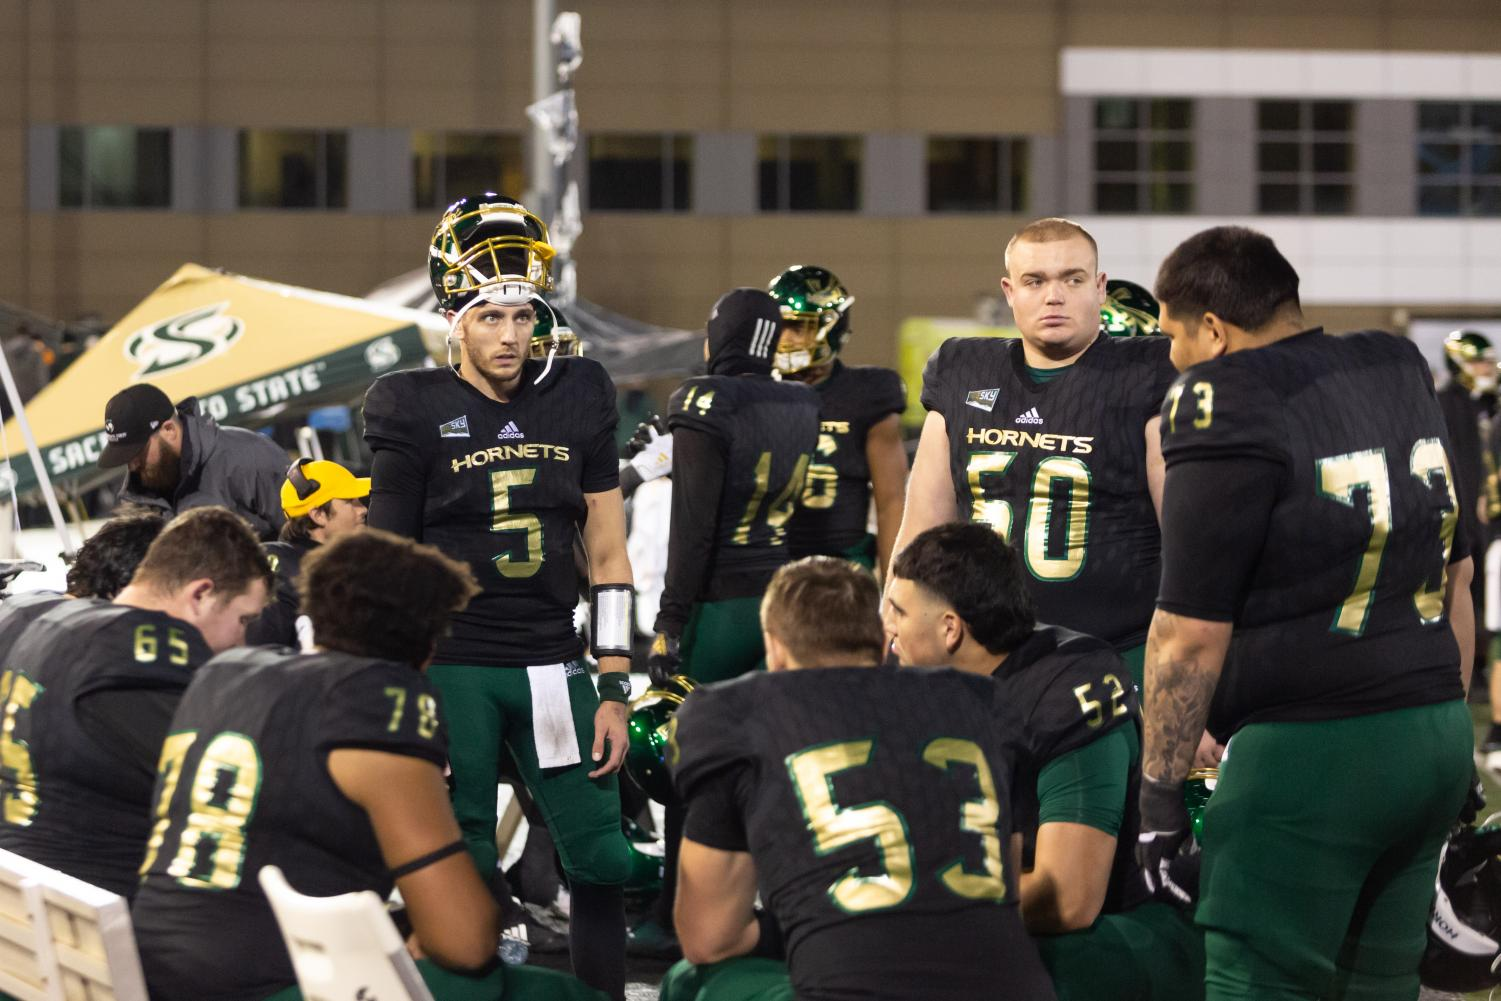 Sac State junior quarterback Kevin Thomson (5) and his teammates watch the clock wind down to its last 10 seconds of a loss against Austin Peay on Saturday, Dec. 7 at Hornet Stadium. The Hornets lost to the Governors 42-28 in the second round of the FCS Playoffs.